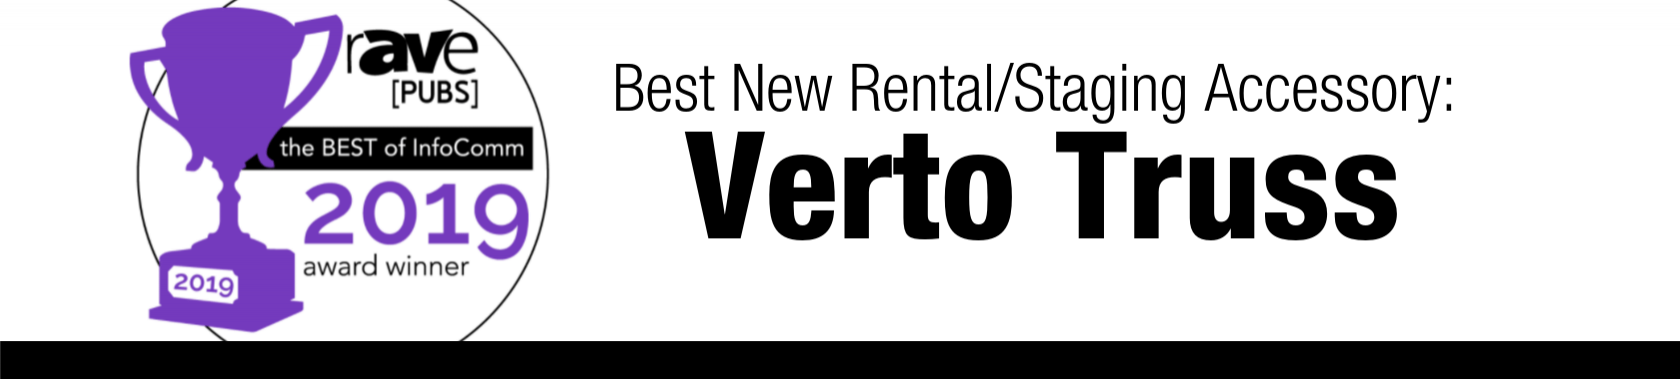 Verto Truss recognized as Best New Rental/Staging Accessory